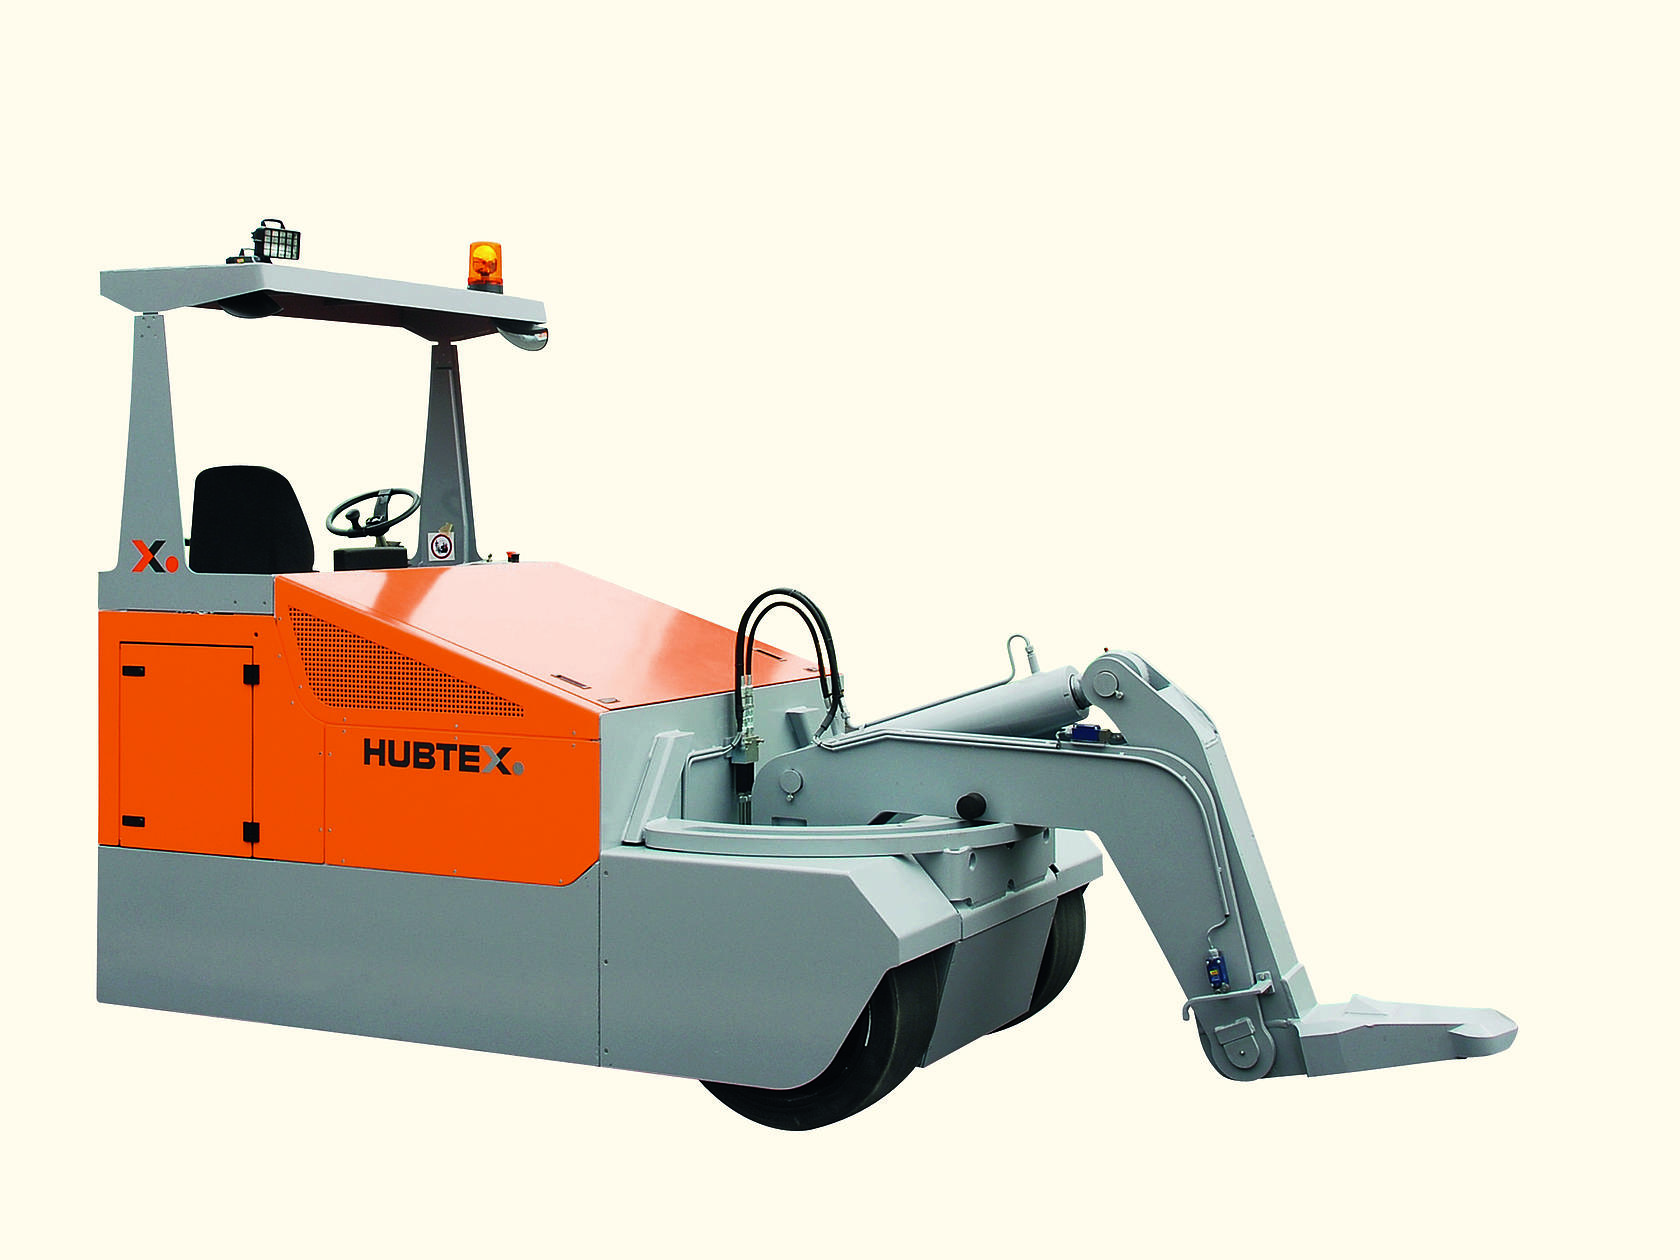 HUBTEX electric towing tractor with gooseneck.